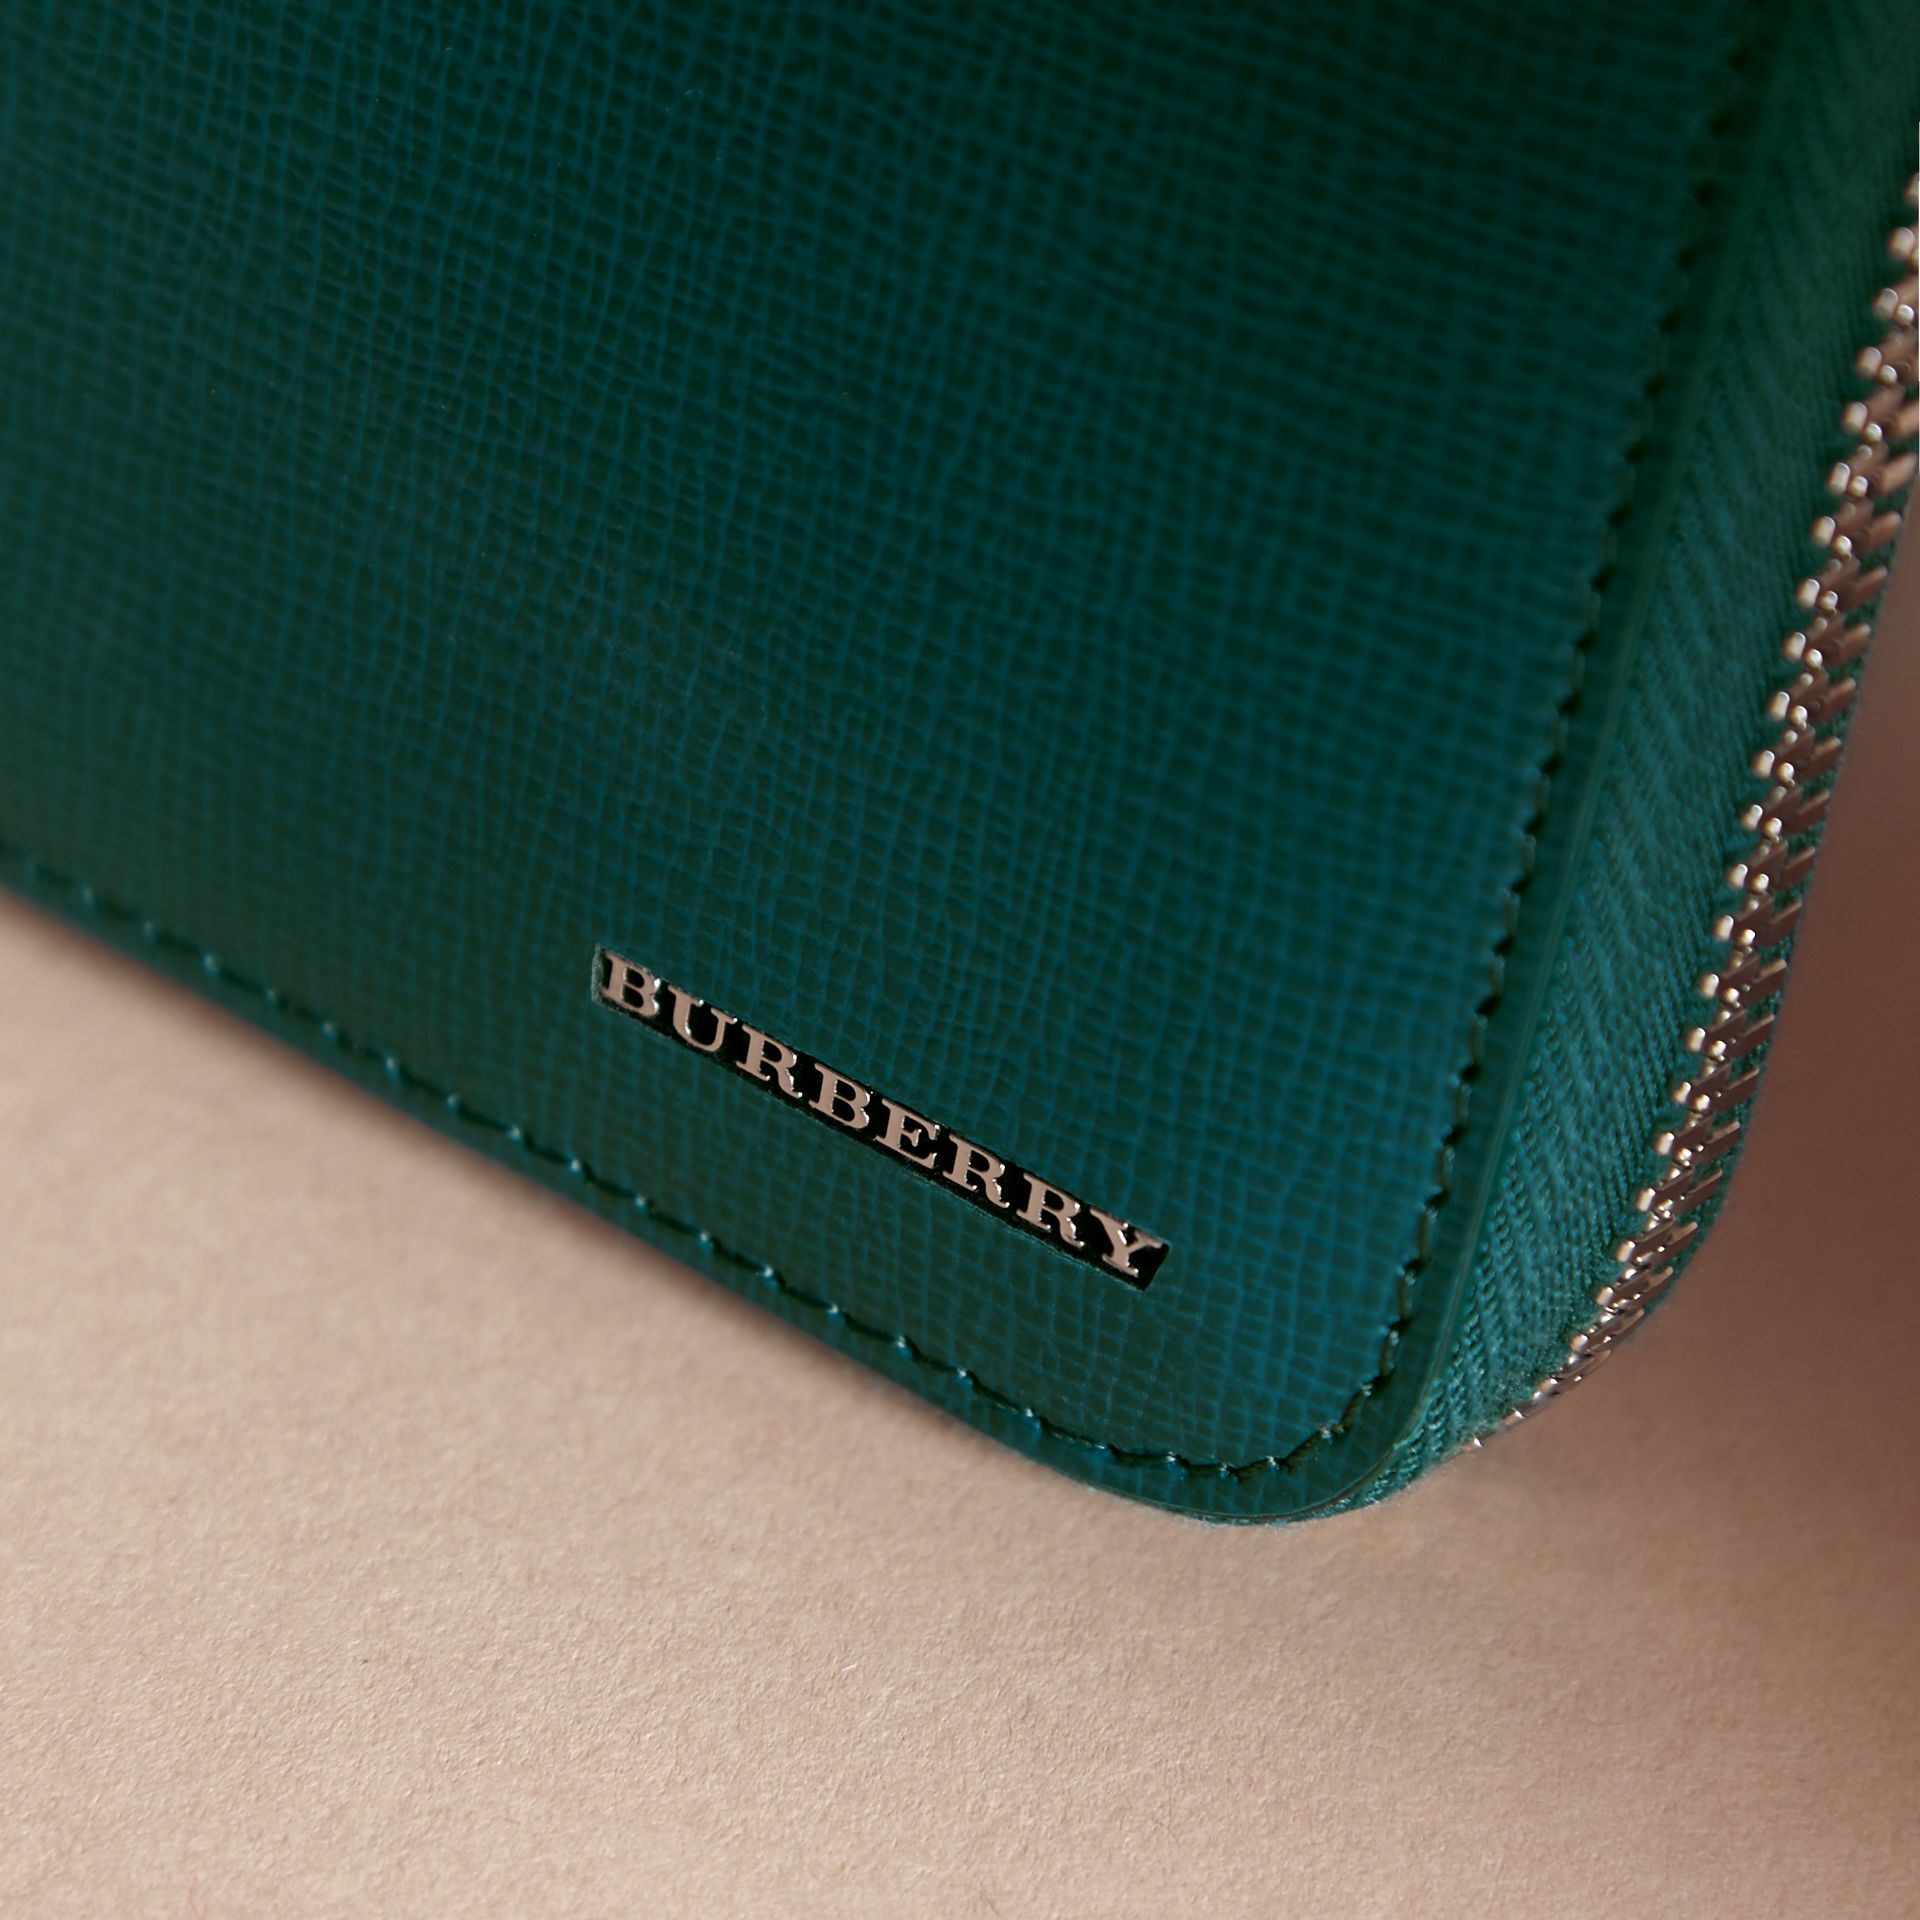 London Leather Ziparound Wallet in Dark Teal - Men | Burberry Singapore - gallery image 2